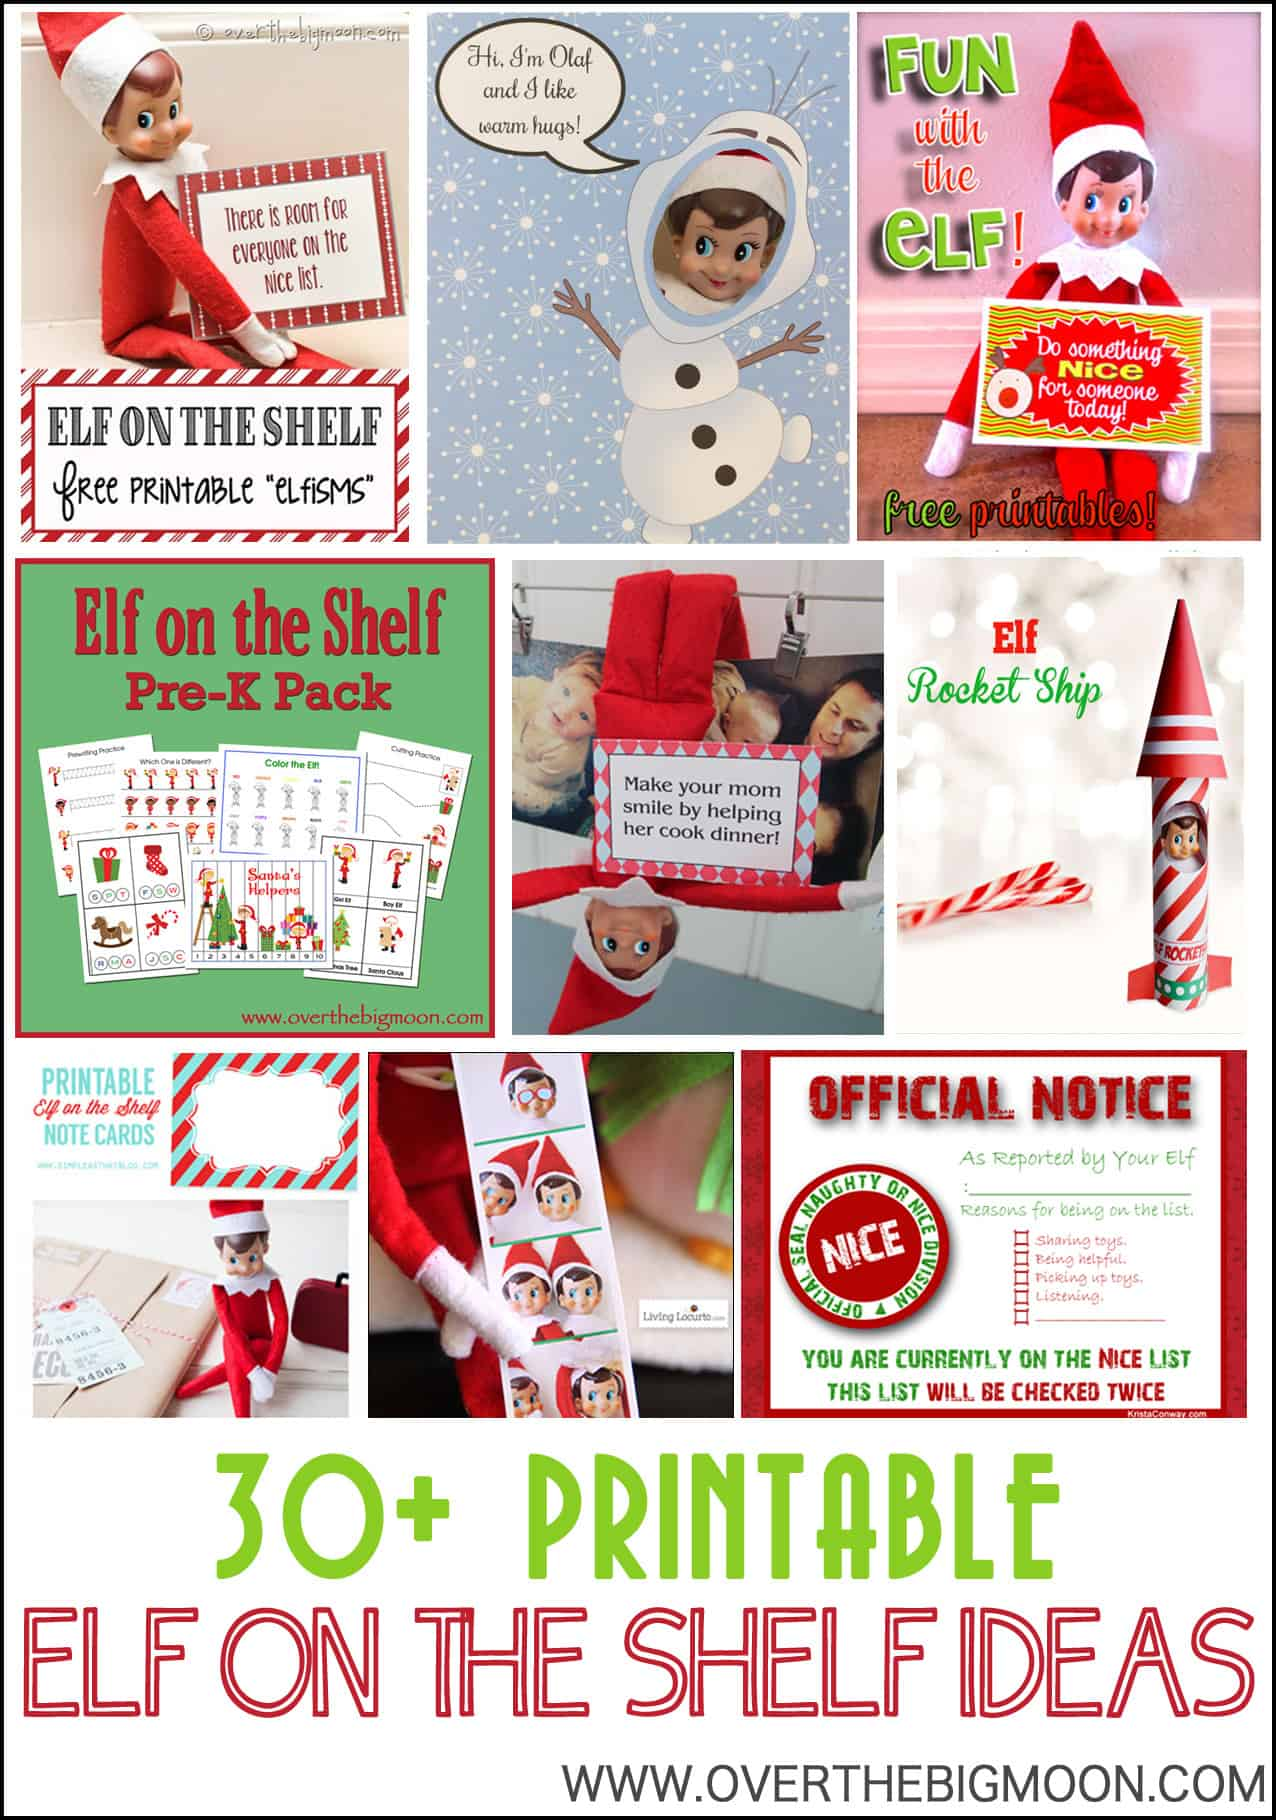 photo relating to Elf on the Shelf Printable Props titled 30+ Printable Elf upon the Shelf Guidelines Earlier mentioned The Large Moon